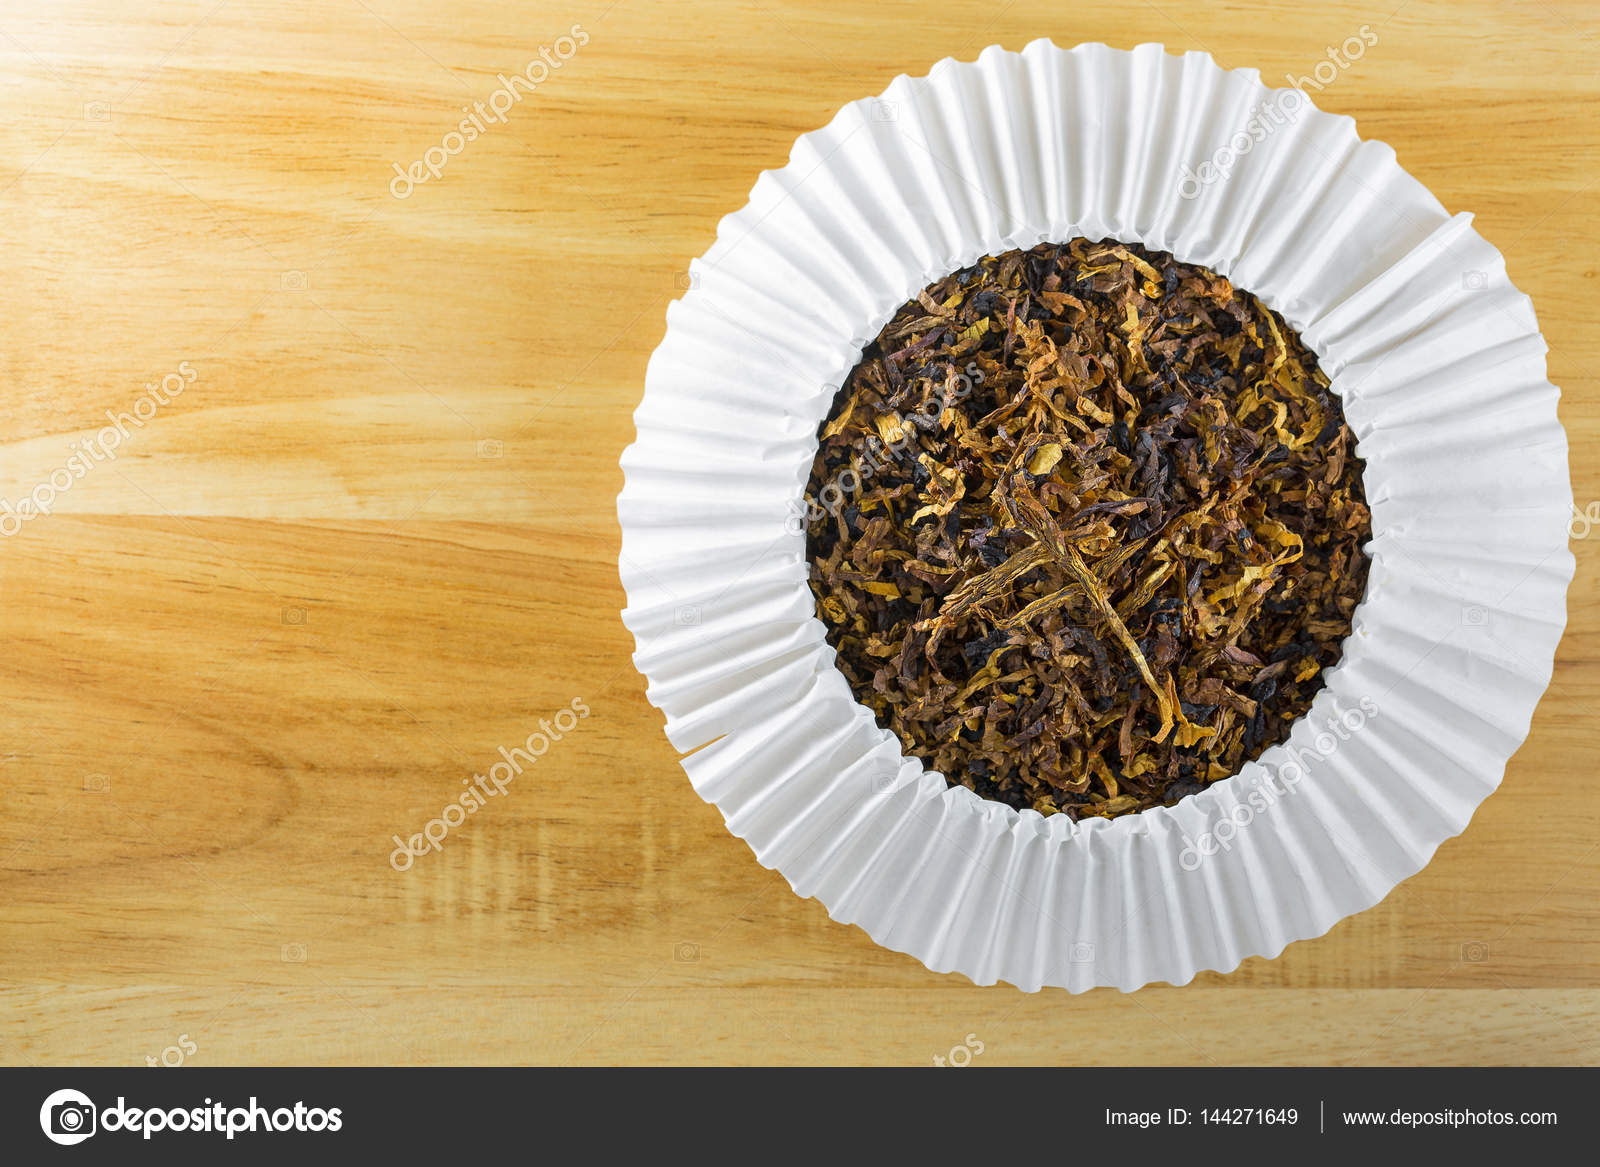 Classic blended aromatic pipe tobacco with vanilla flavor on bri u2014 Stock Photo & Classic blended aromatic pipe tobacco with vanilla flavor on bri ...